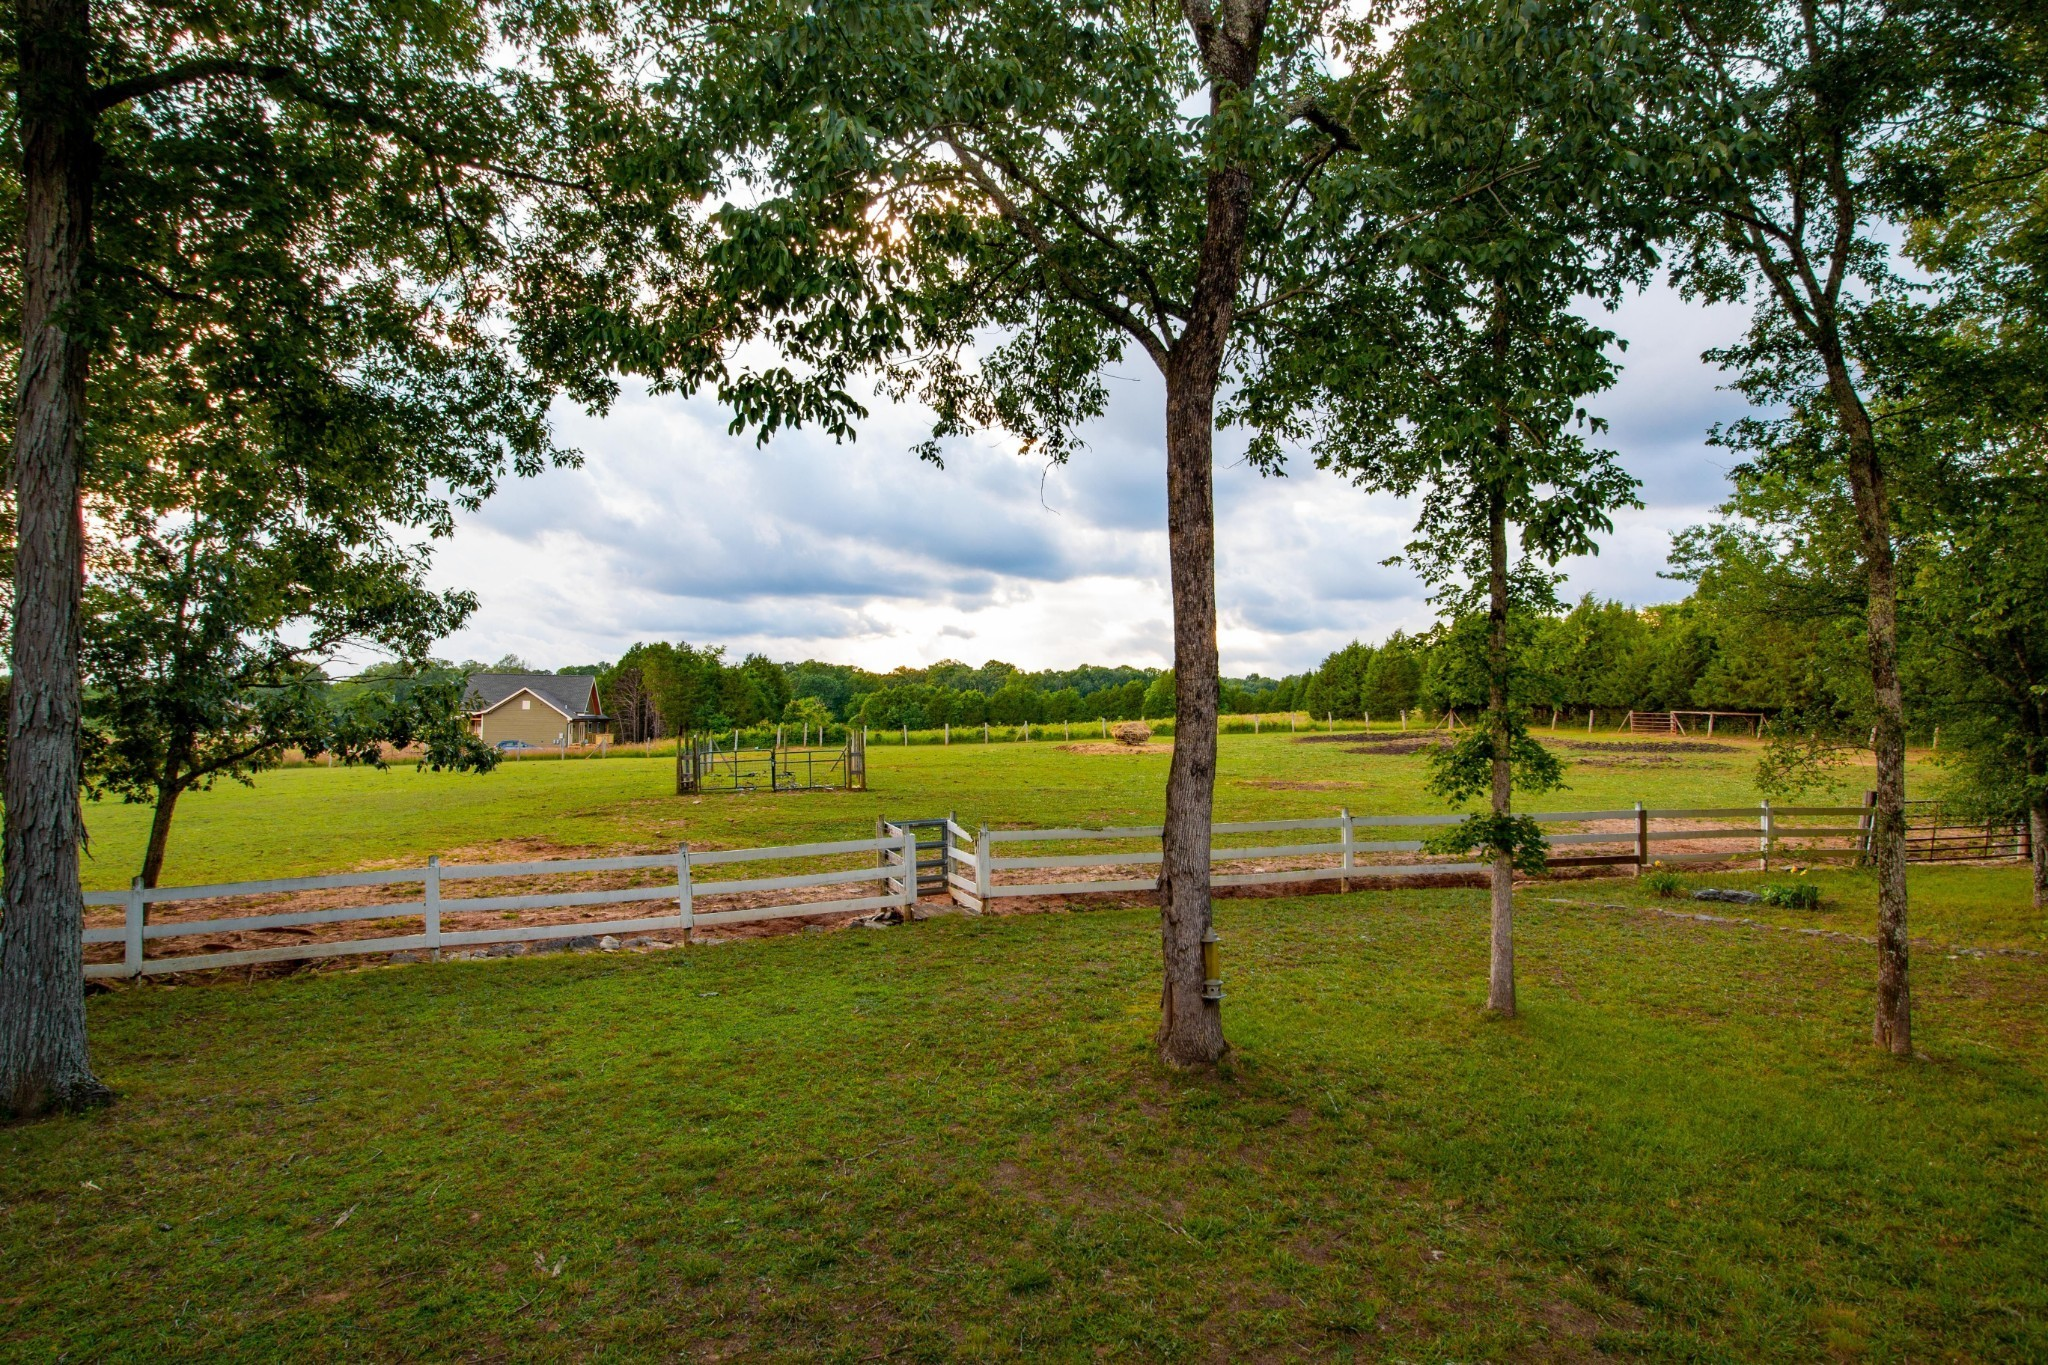 Bring your horses! One mile from Williamson County line. Beautiful sunset views at the quiet country home with two front porches overlooking serene pasture. Plenty of walking/hiking trails, great 4-wheeling, tree house, 3500 sq ft barn with large loft and storage space for hay and/or equipment. Must see to view all the amenities. Priced below appraisal and ready for new owners.